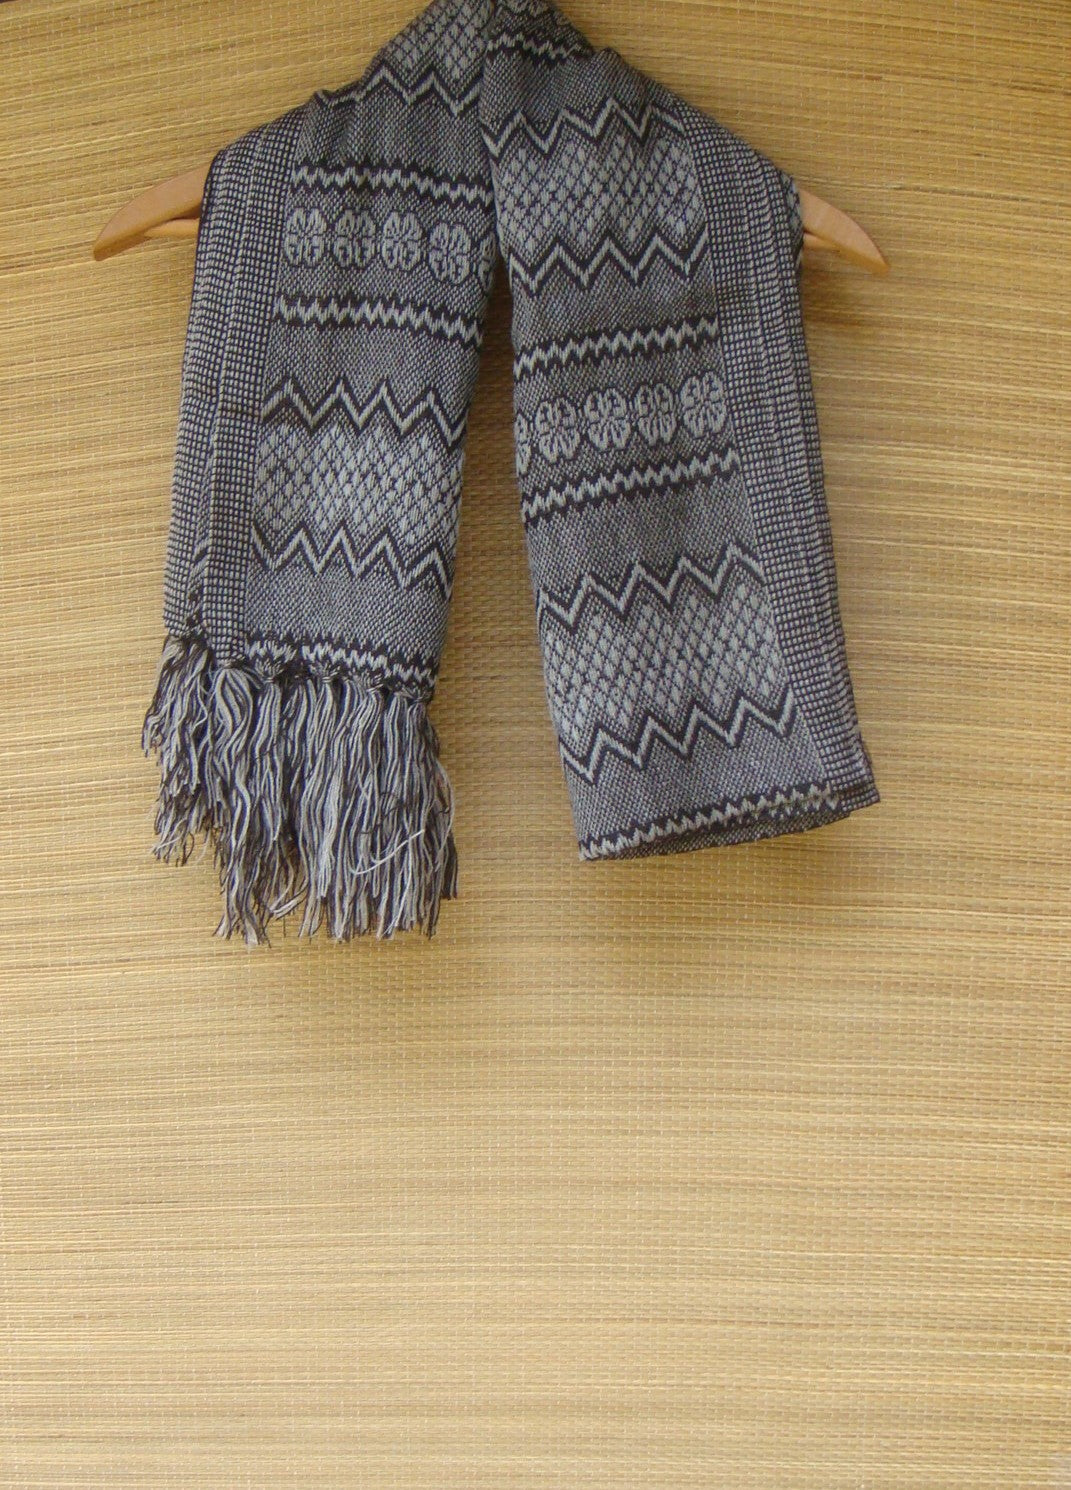 Brown Black Cream Rebozo Shawl with Geometric Pattern from Mexico